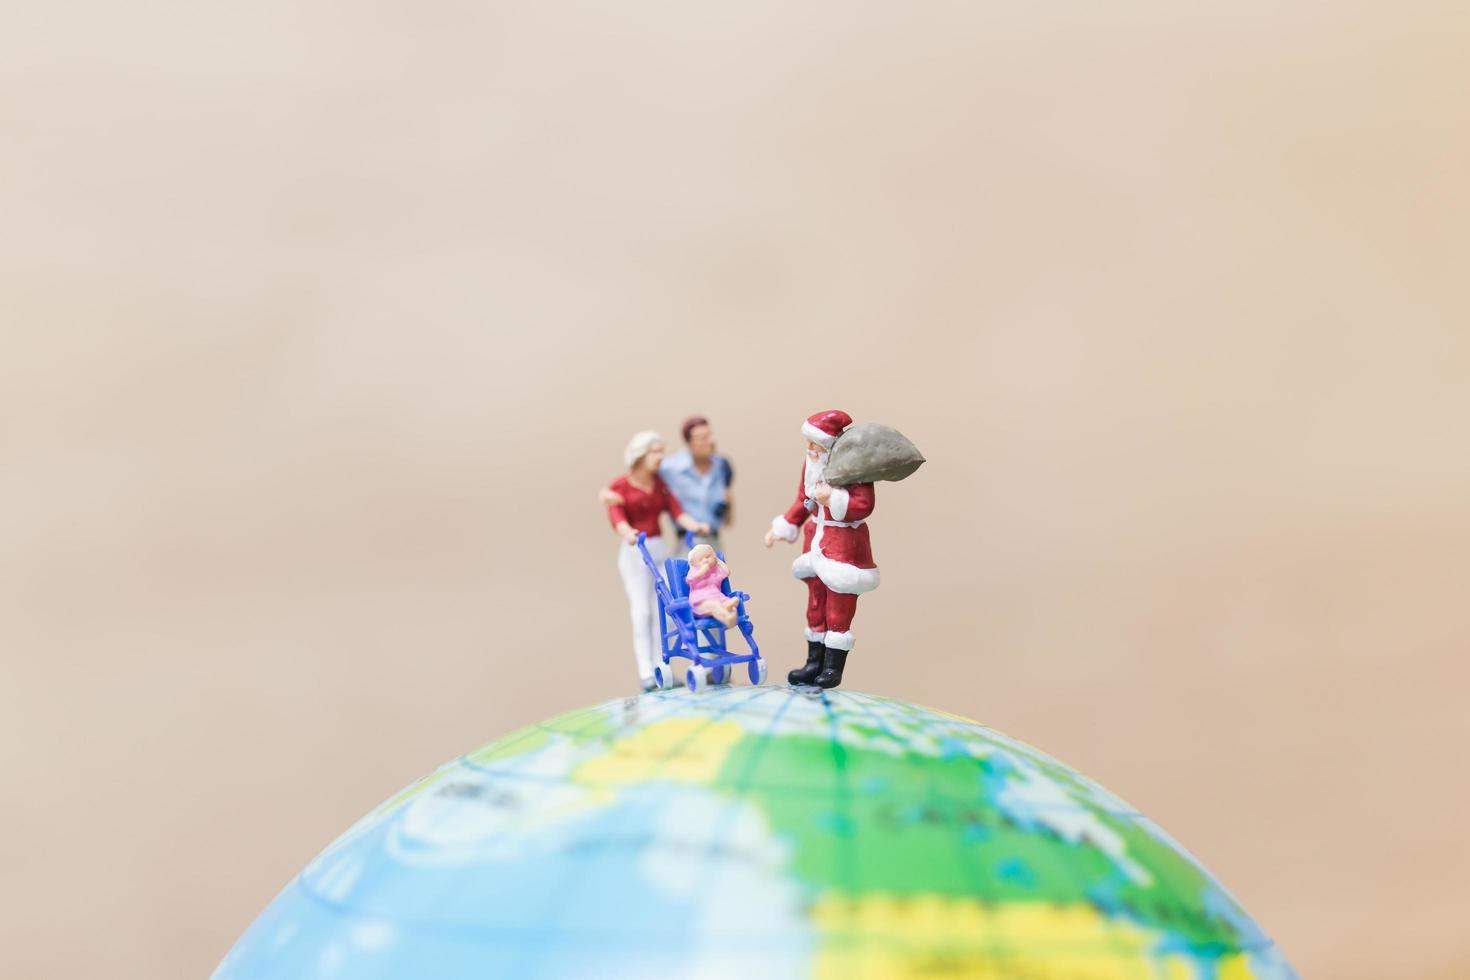 Miniature Santa Claus holding gifts for kids on a globe, Merry Christmas concept photo